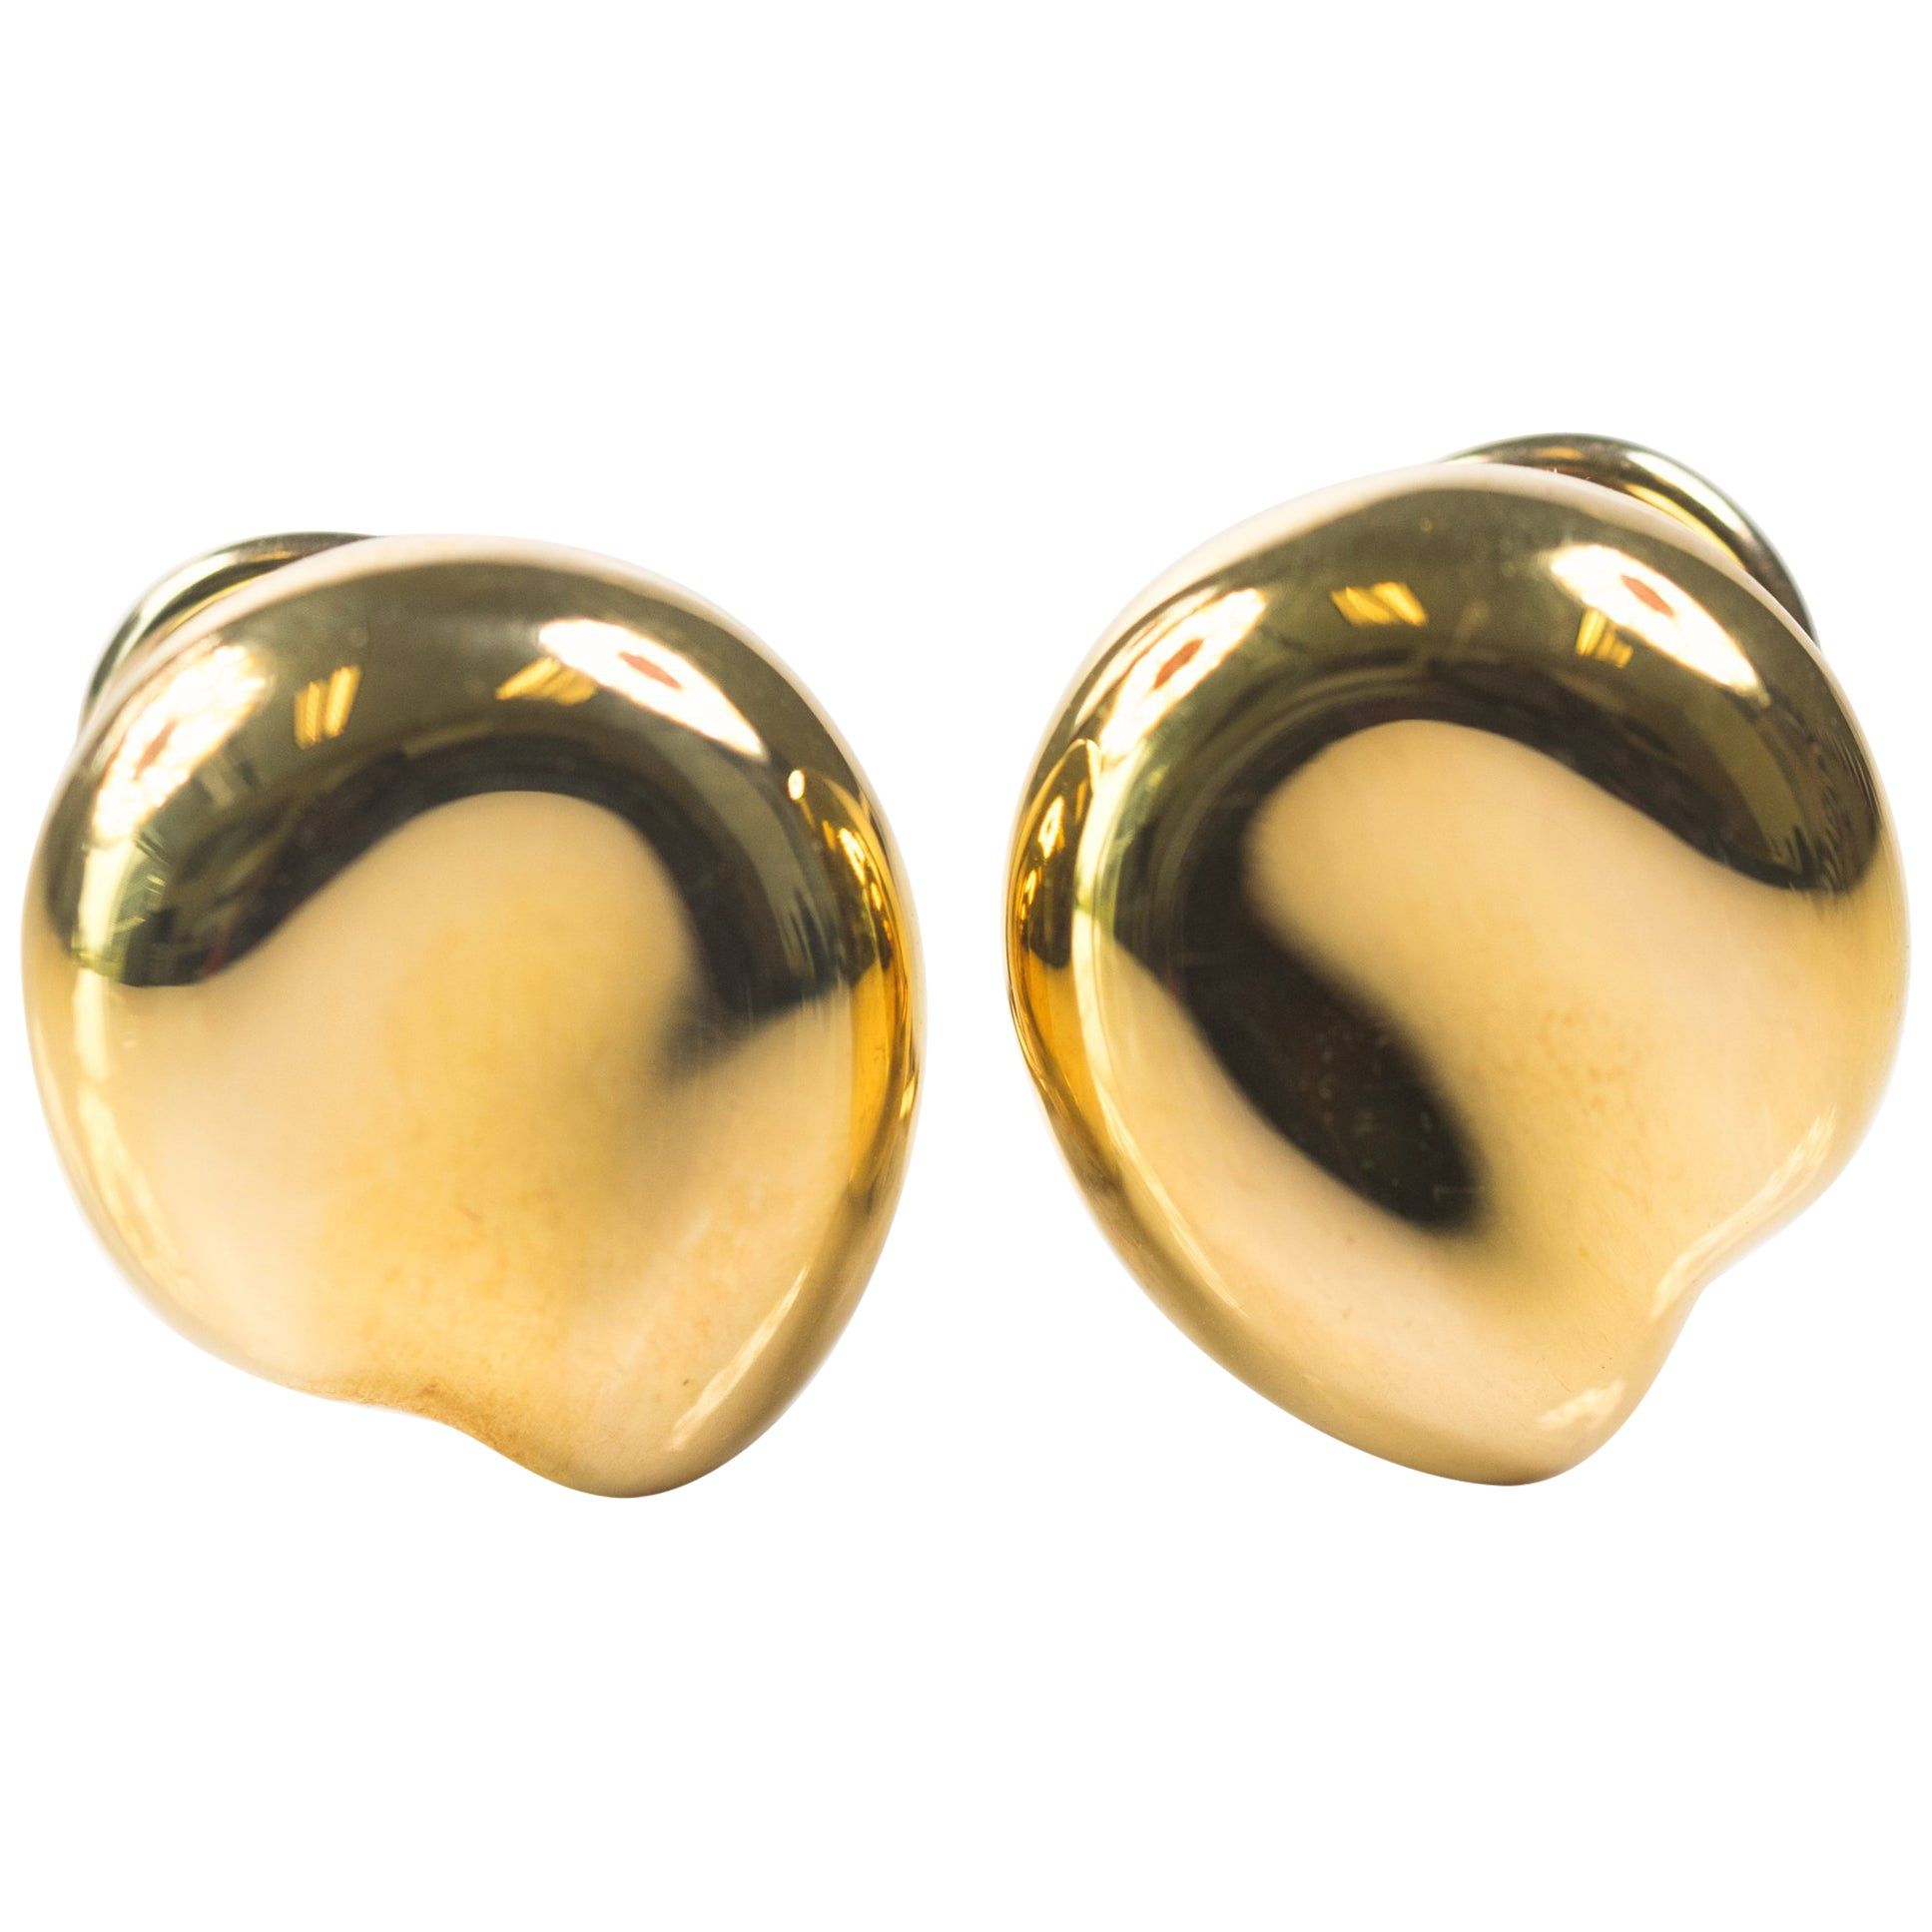 Tiffany and Co. 18 Karat Yellow Gold Earrings, Elsa Peretti Bean Collection